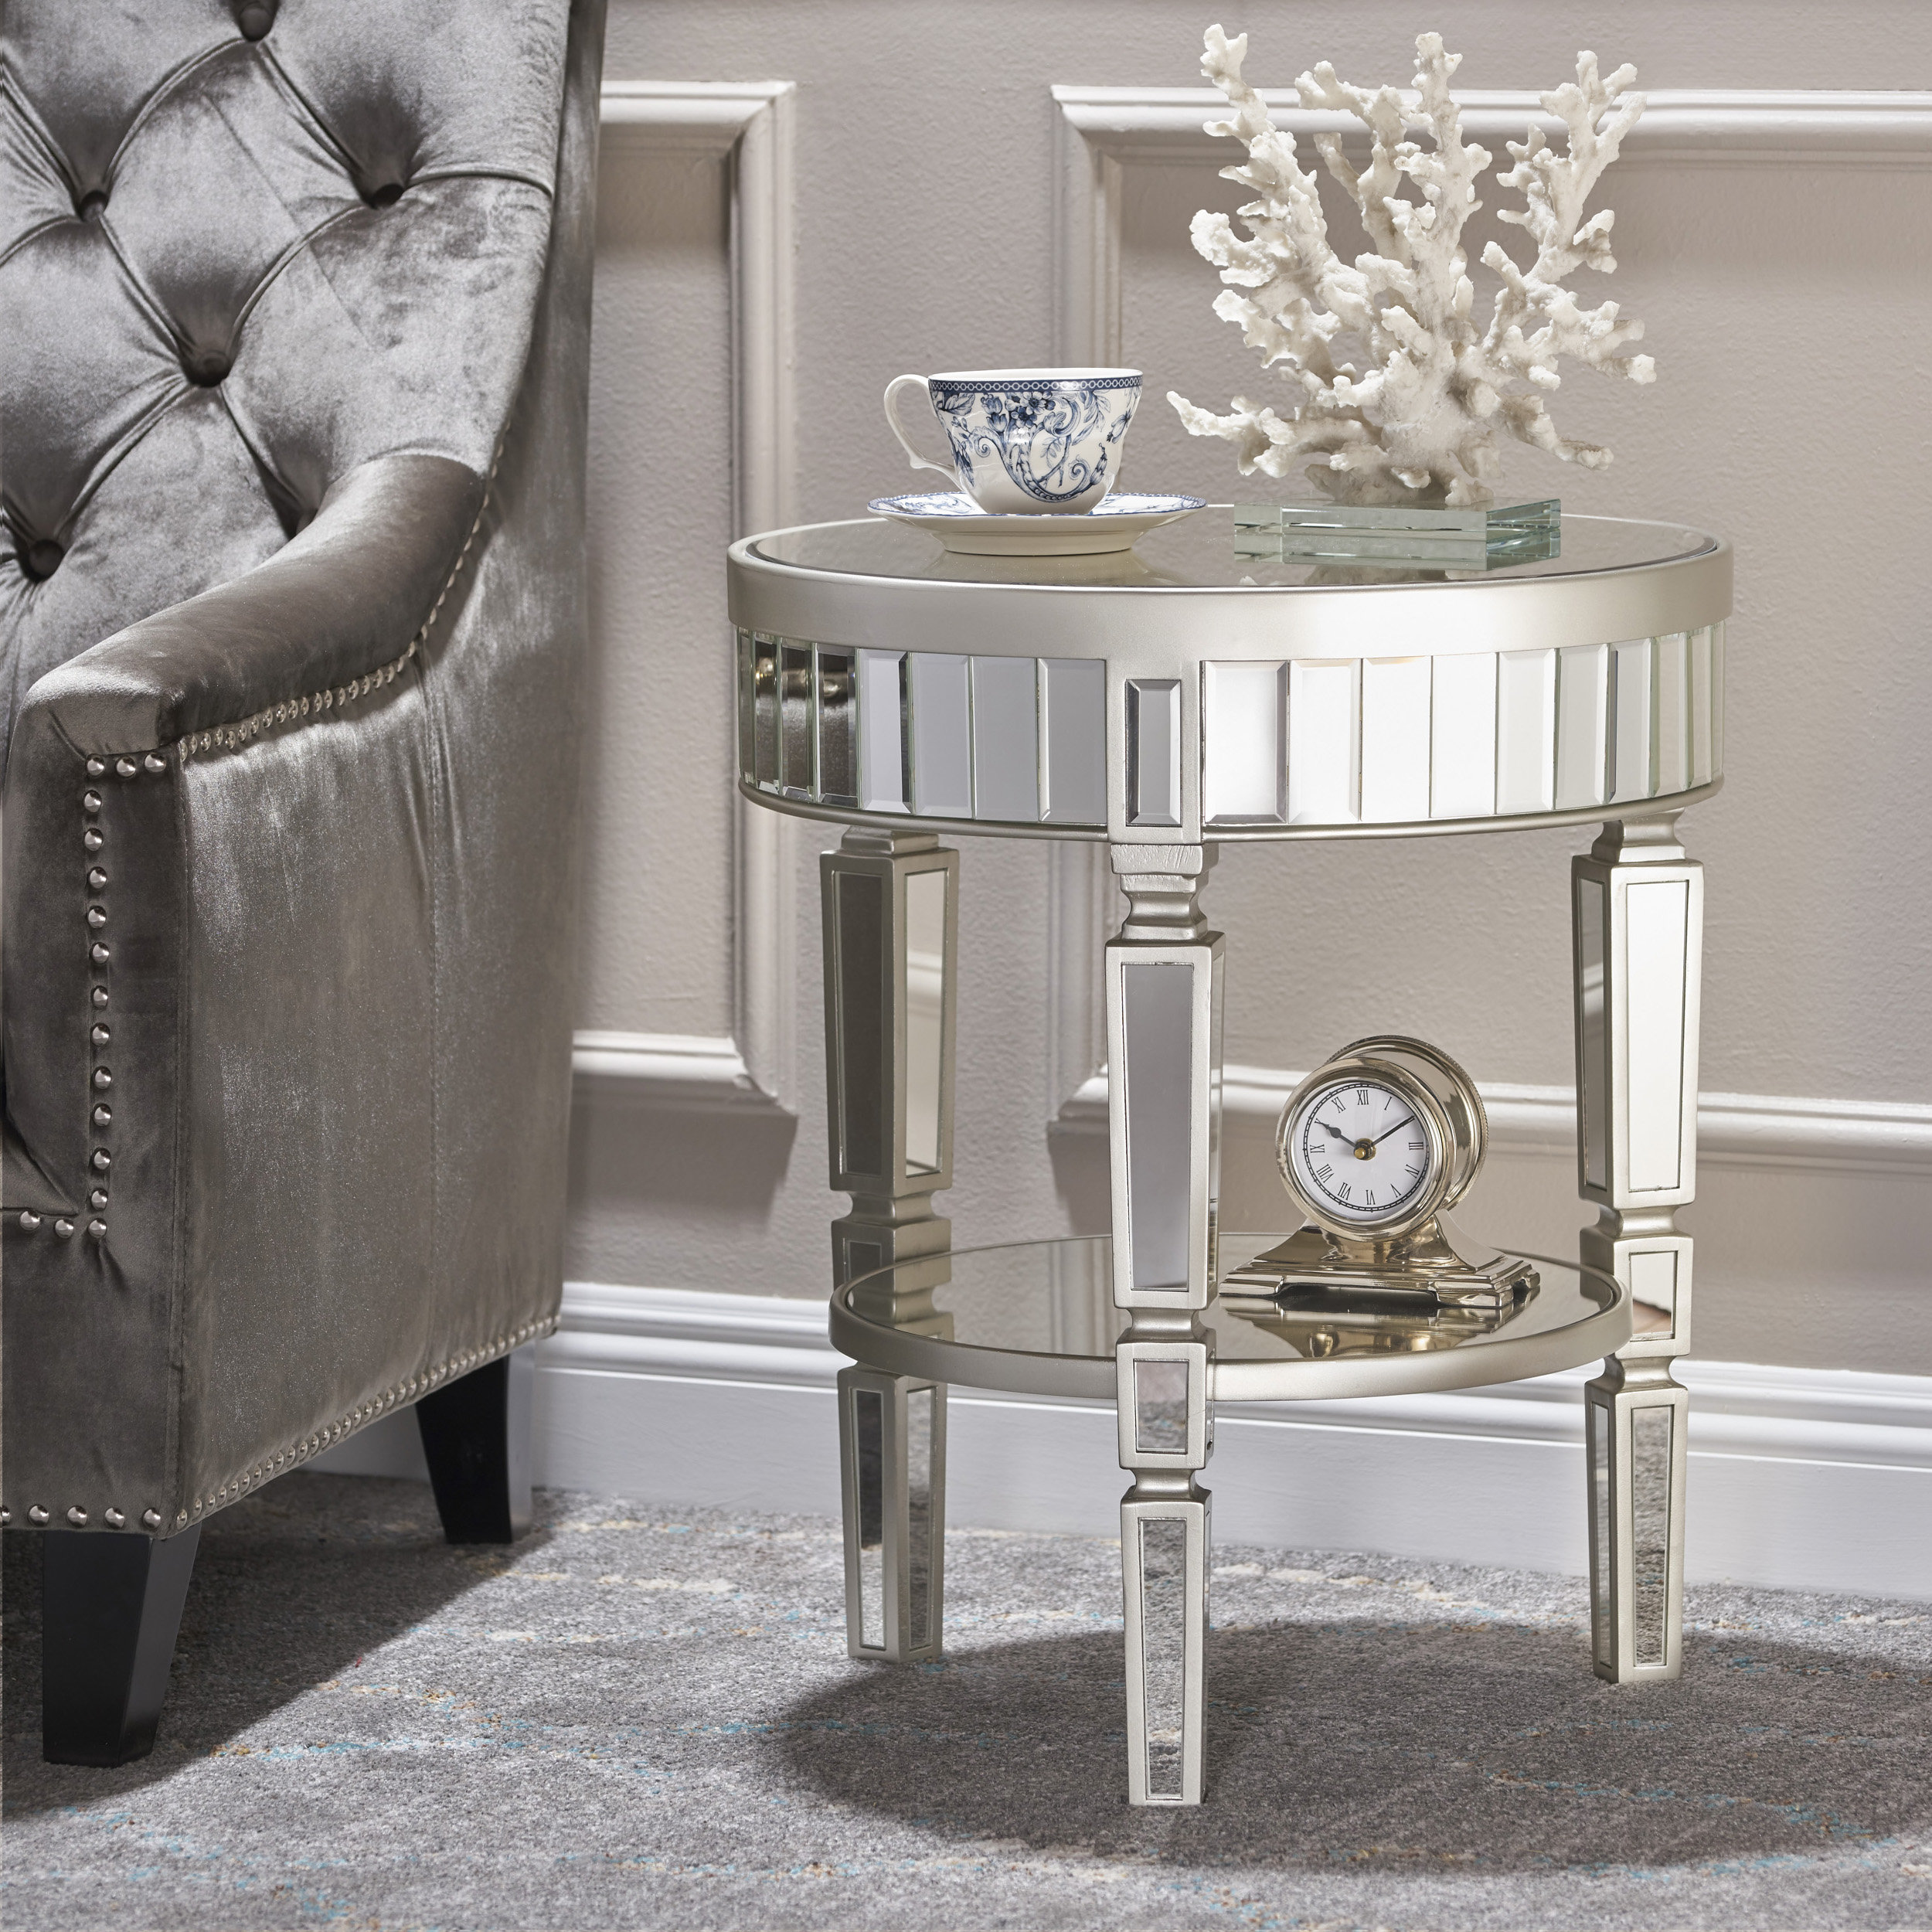 table dazzling mirrored end for your home decor hollywood side tables bedroom white bedside small glass accent with drawer lucite coffee shelf lift top target floor rugs patio